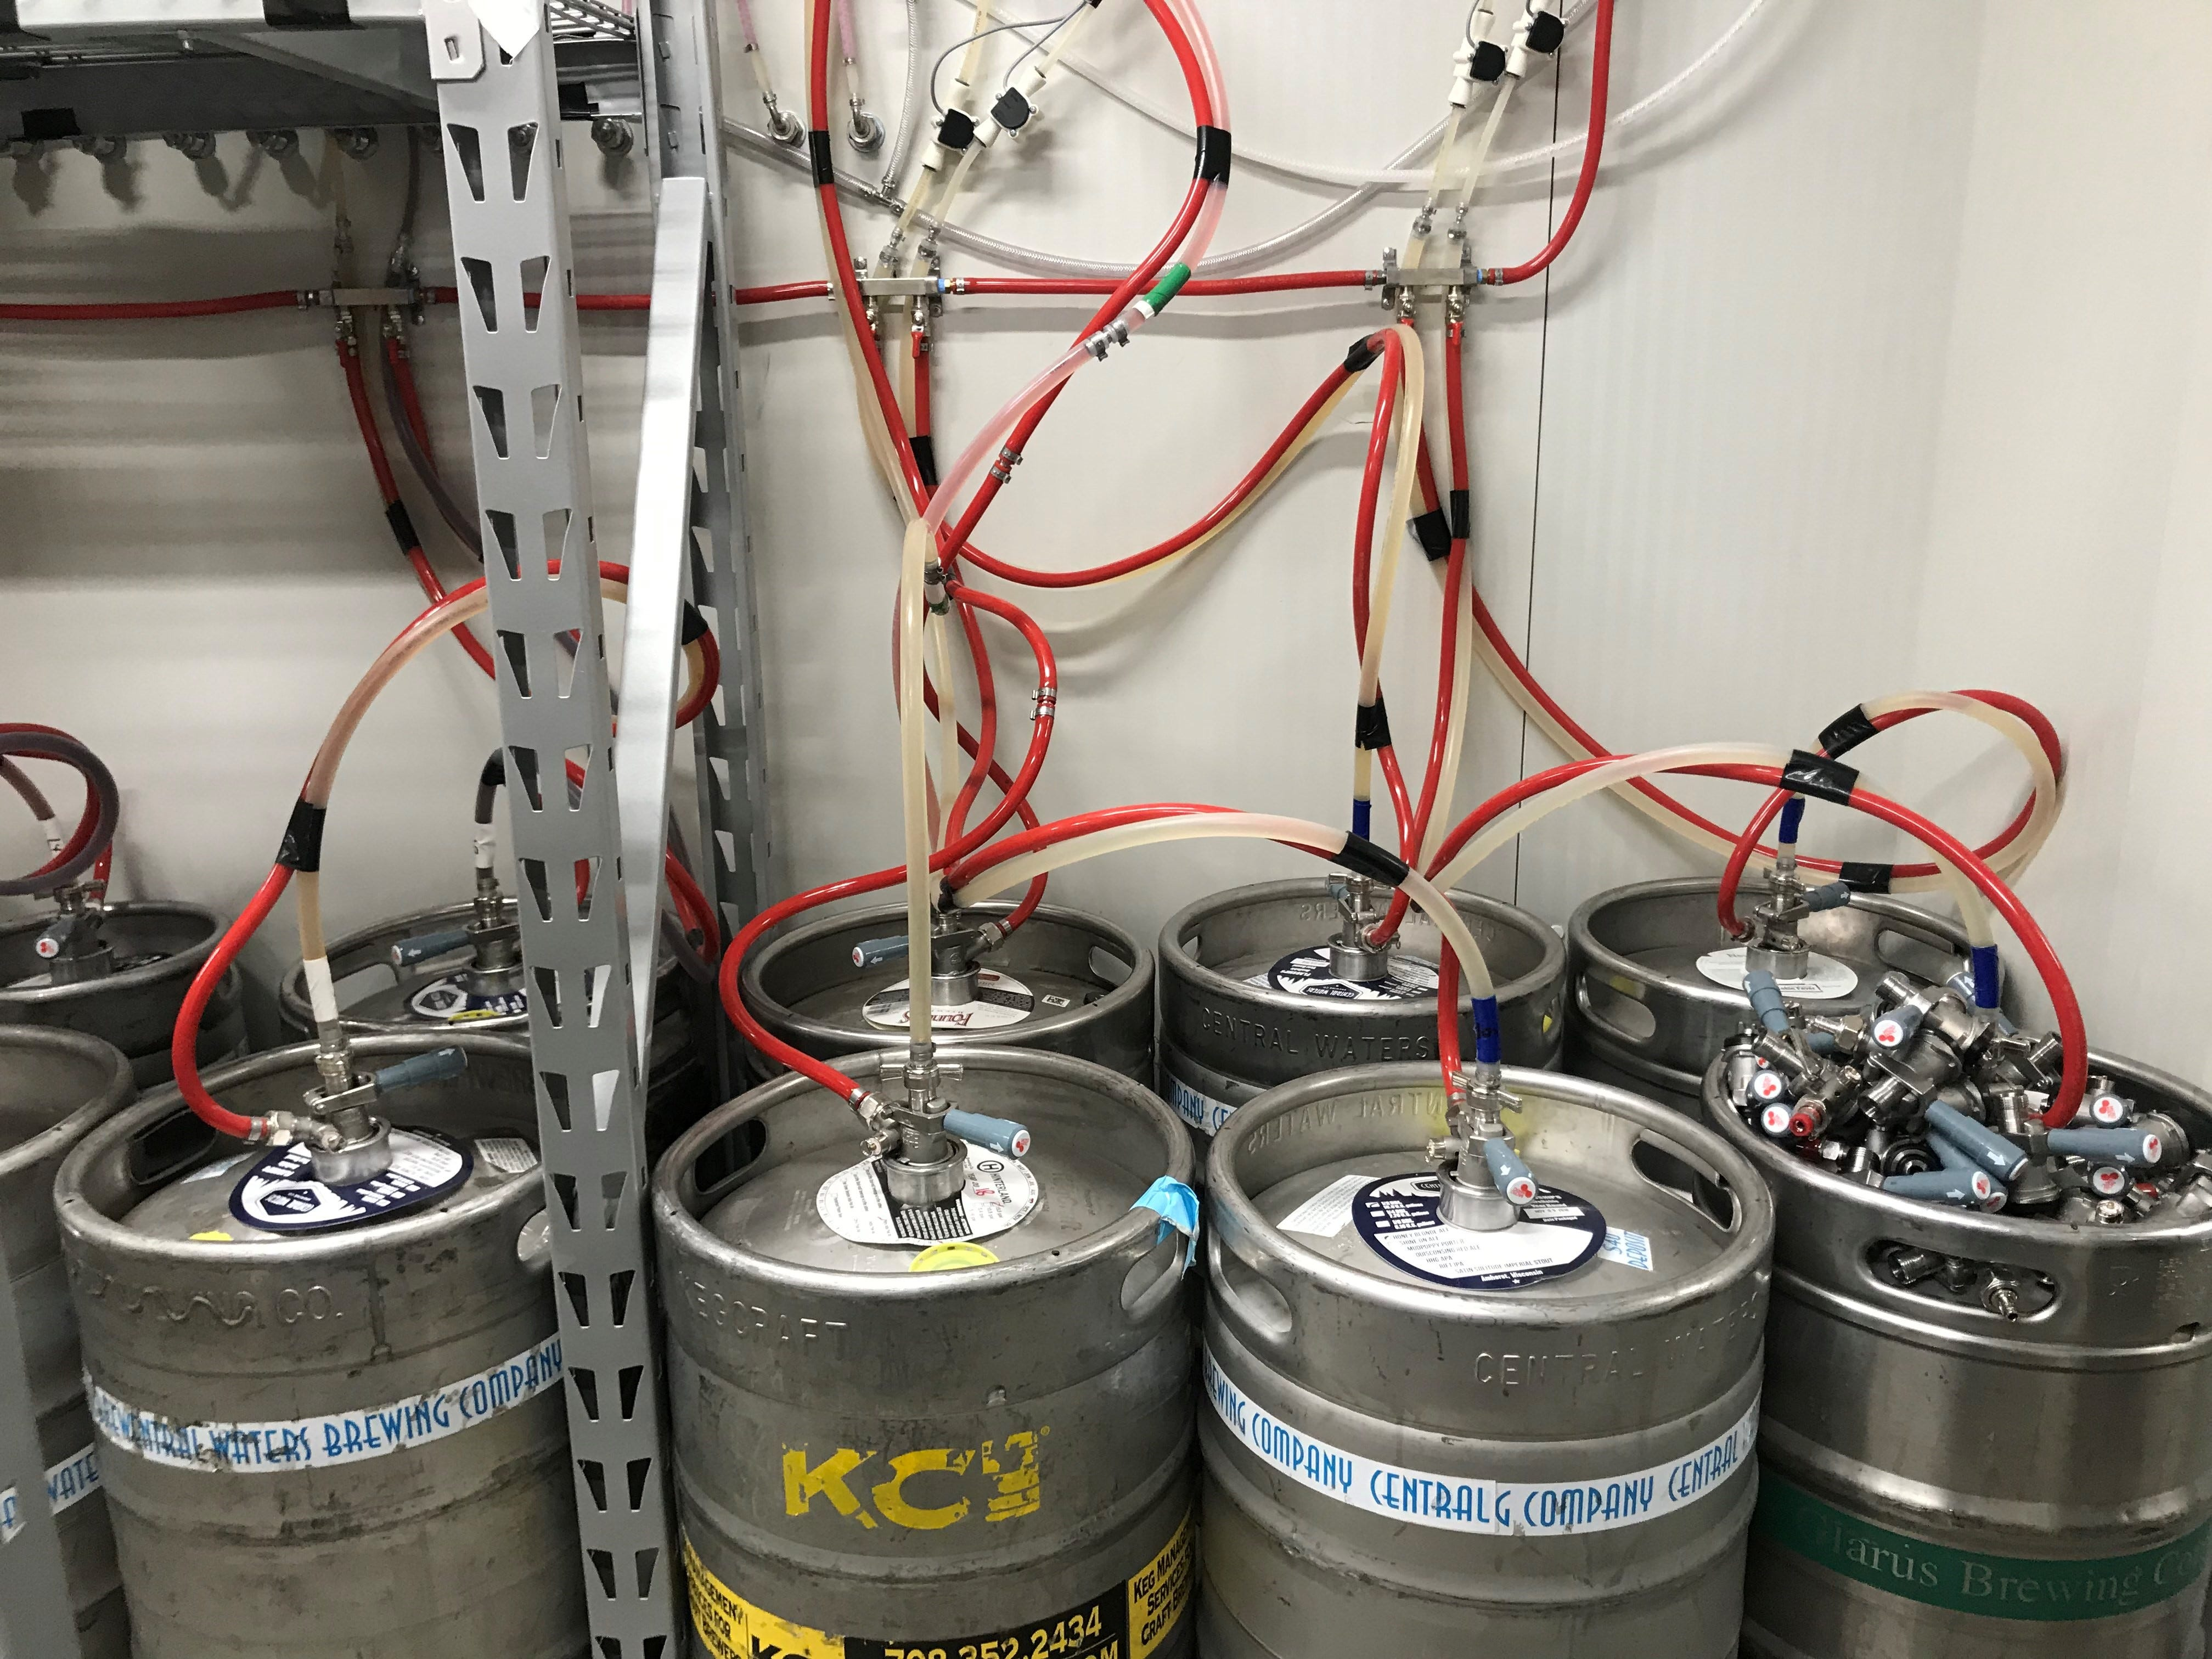 Tine & Cellar has special cooling technology in its keg system, with an internal barrier to keep gas from escaping and maintain the freshness of the beer. There is also vinyl-less piping. The system ensures there won't be any flavor transfer between beers.